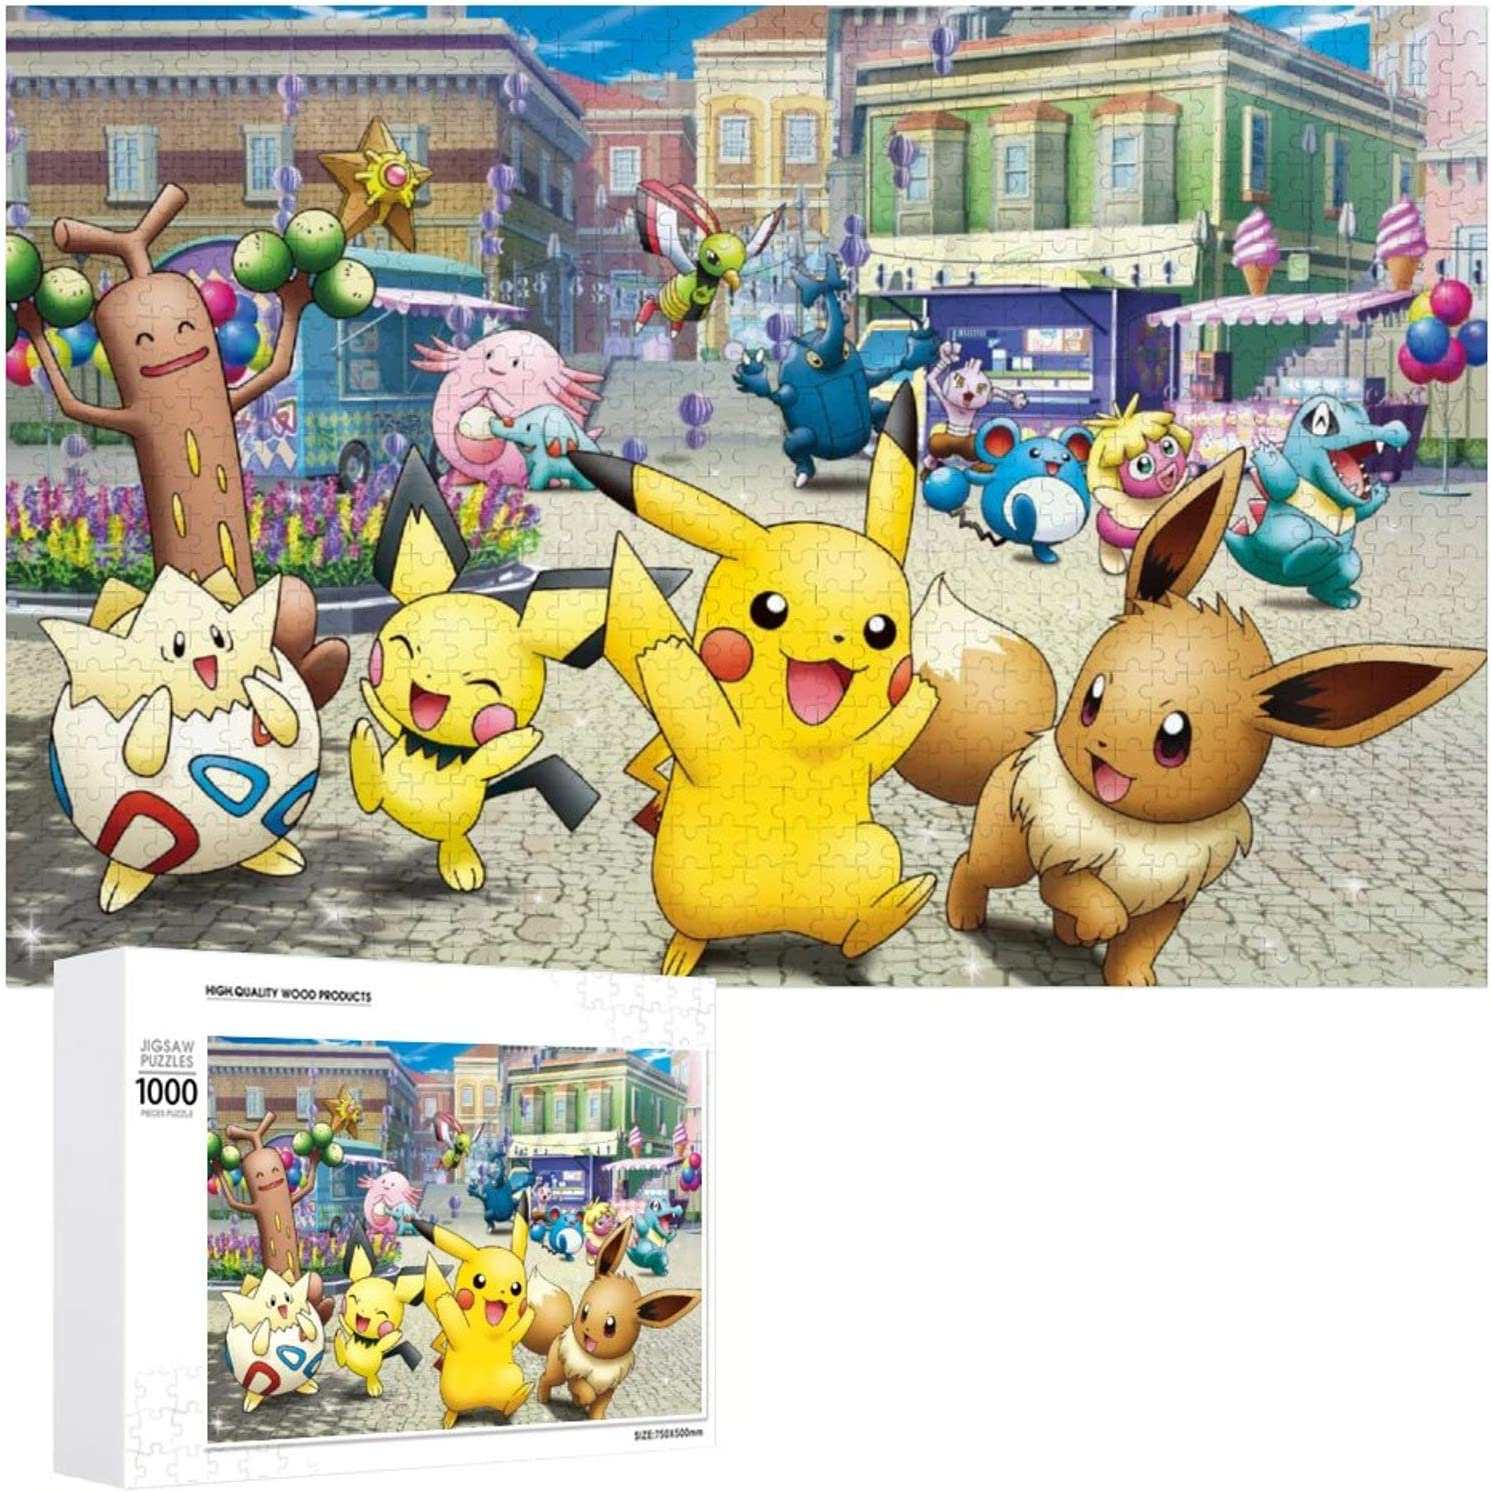 Wooden Jigsaw Puzzles Difficult 500/1000 Pieces,Pikachu Pichu Eevee Togepi,Cute Cartoon Anime Game Entertainment DIY Toys Creative Gift Home Decor for Adult and Kids,Boys,Girls